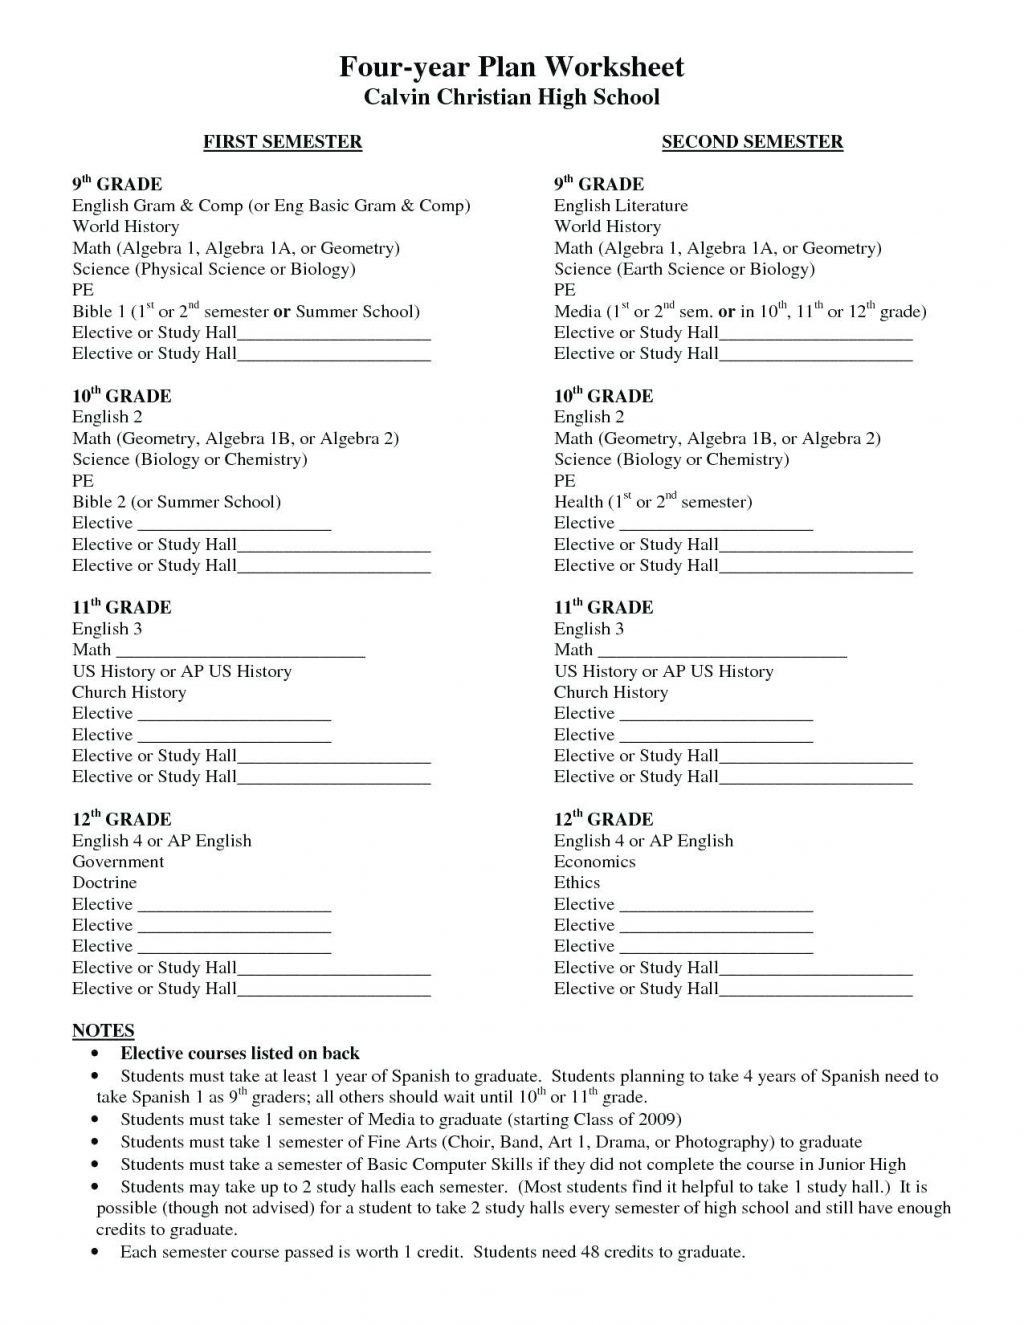 6th Grade istep Practice Worksheets 10th Grade English Worksheets